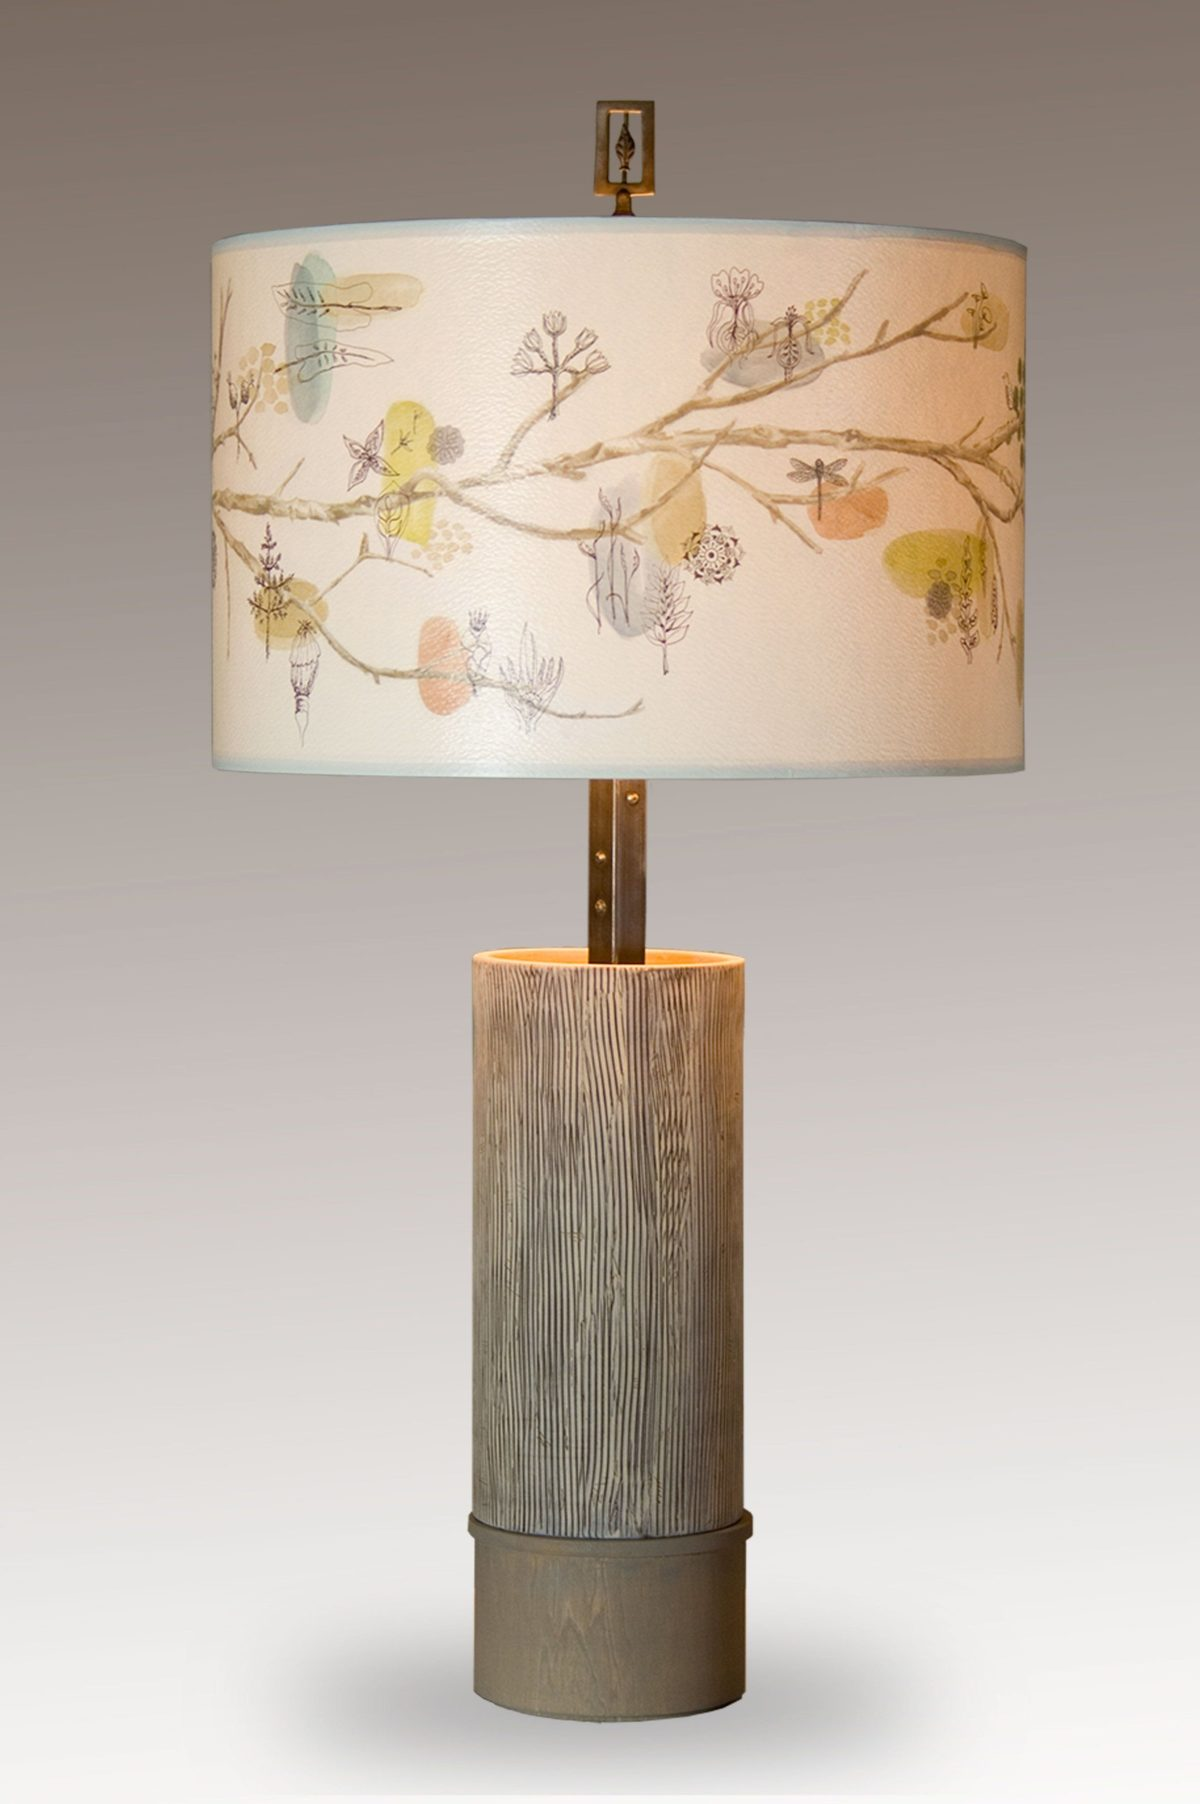 Artful Branch Ceramic and Wood Table Lamp